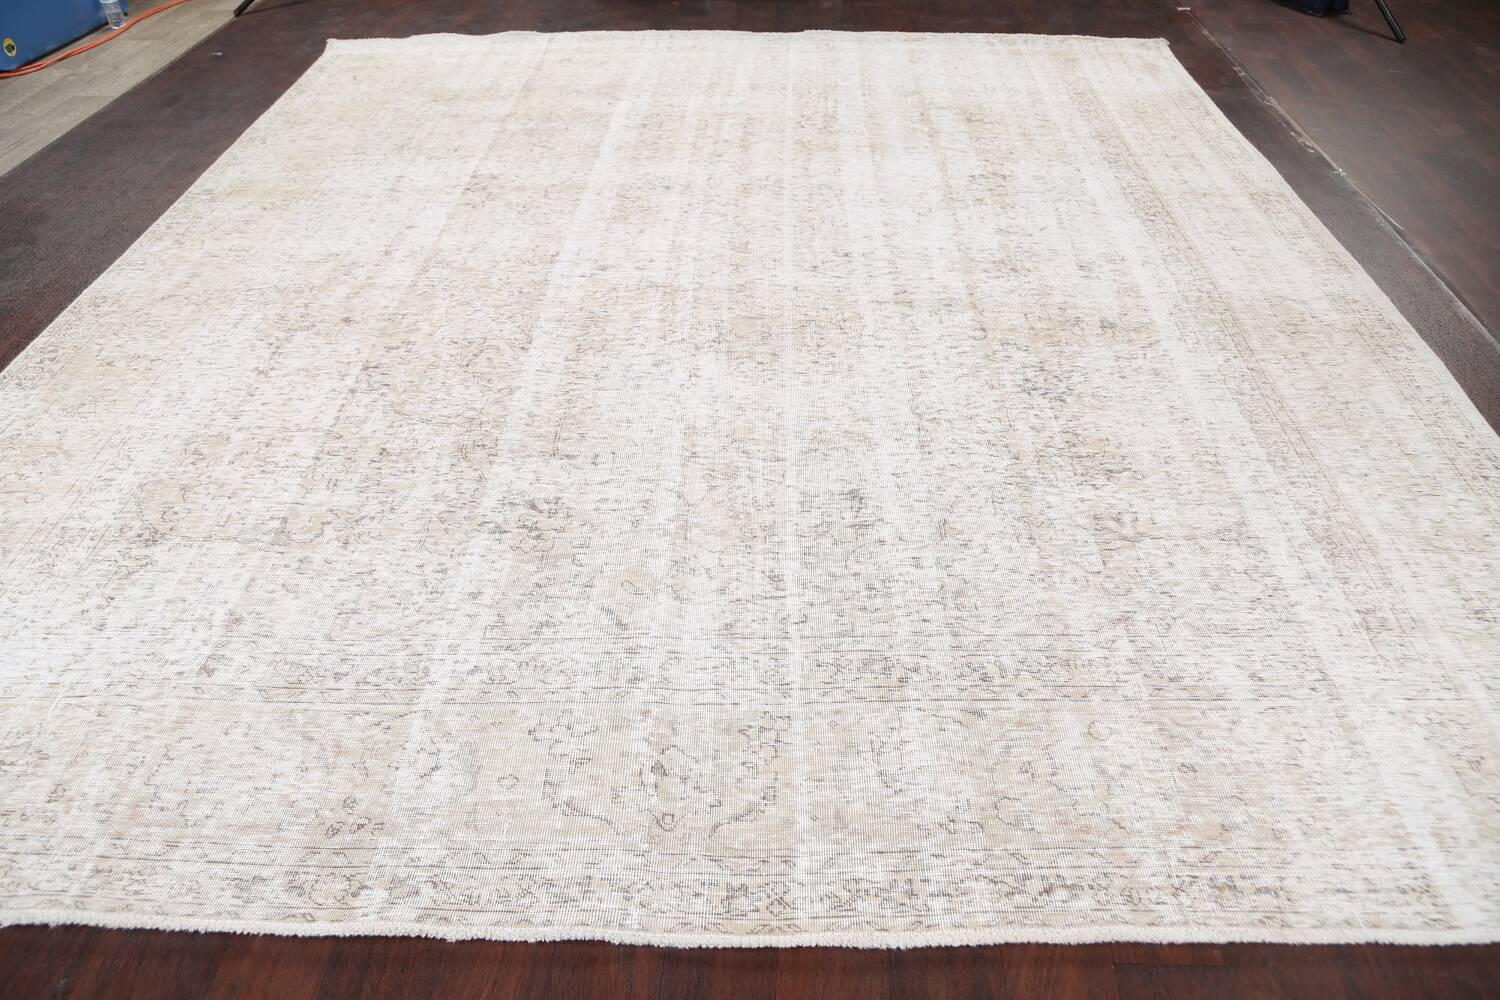 Antique Muted Vintage Distressed Oriental Area Rug 10x11 image 16